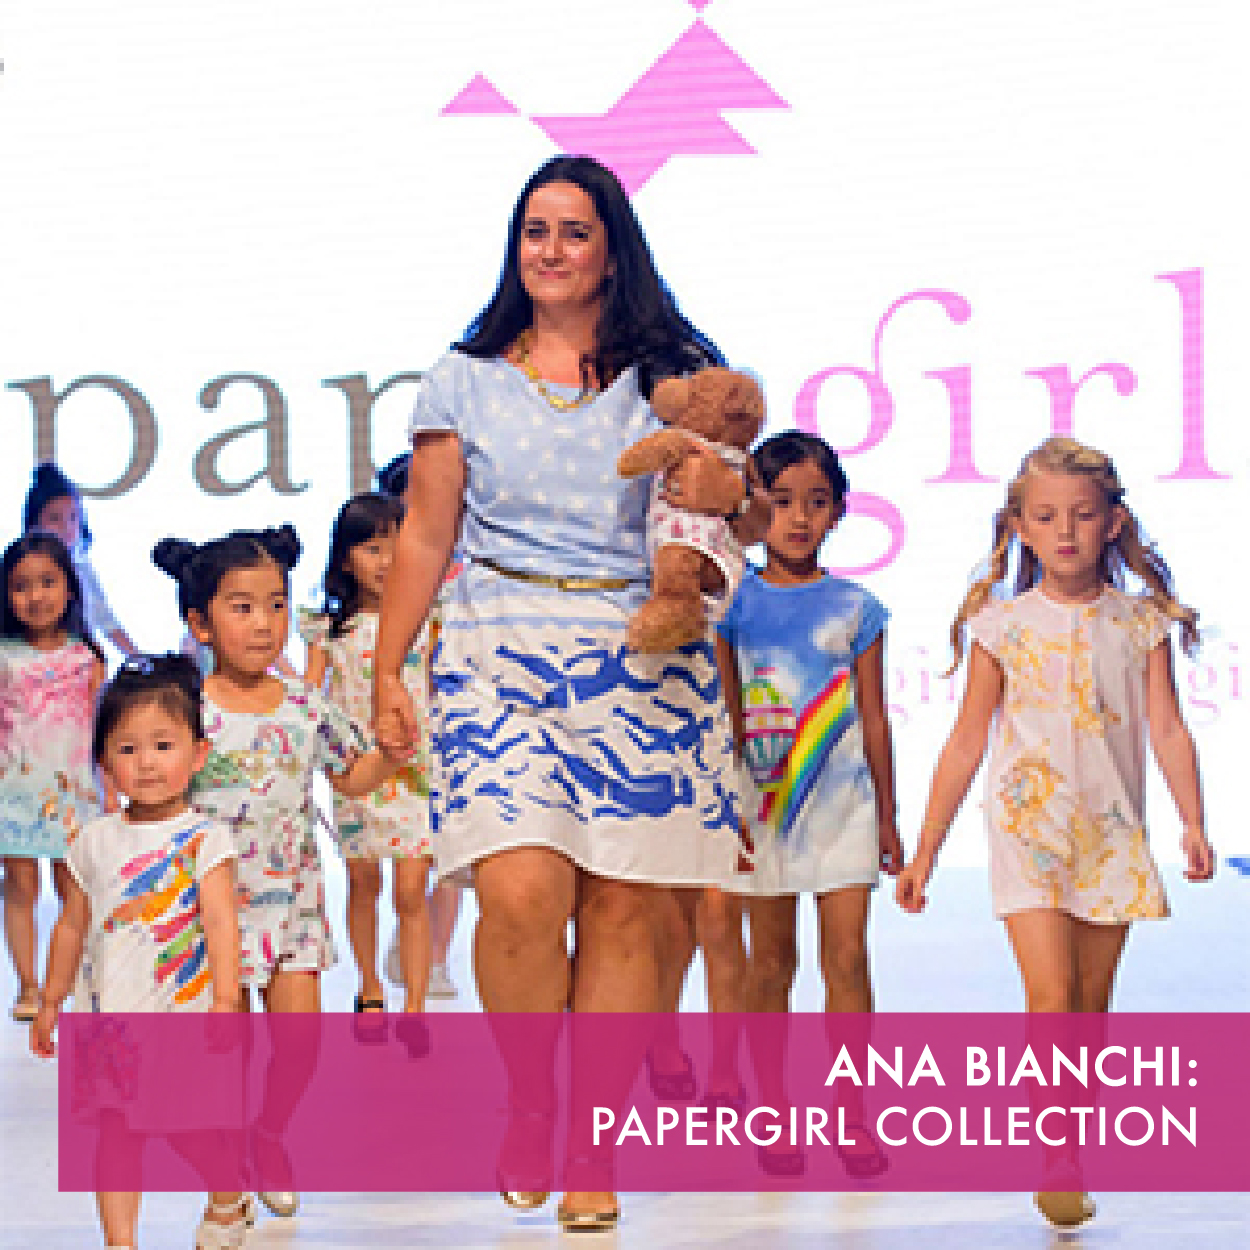 PaperGirl Collection, illustrated clothes, books, toys and decor for girls, celebrates imagination and creative freedom. Artwork is inspired by nature, art, cultures, and childhood fantasies.